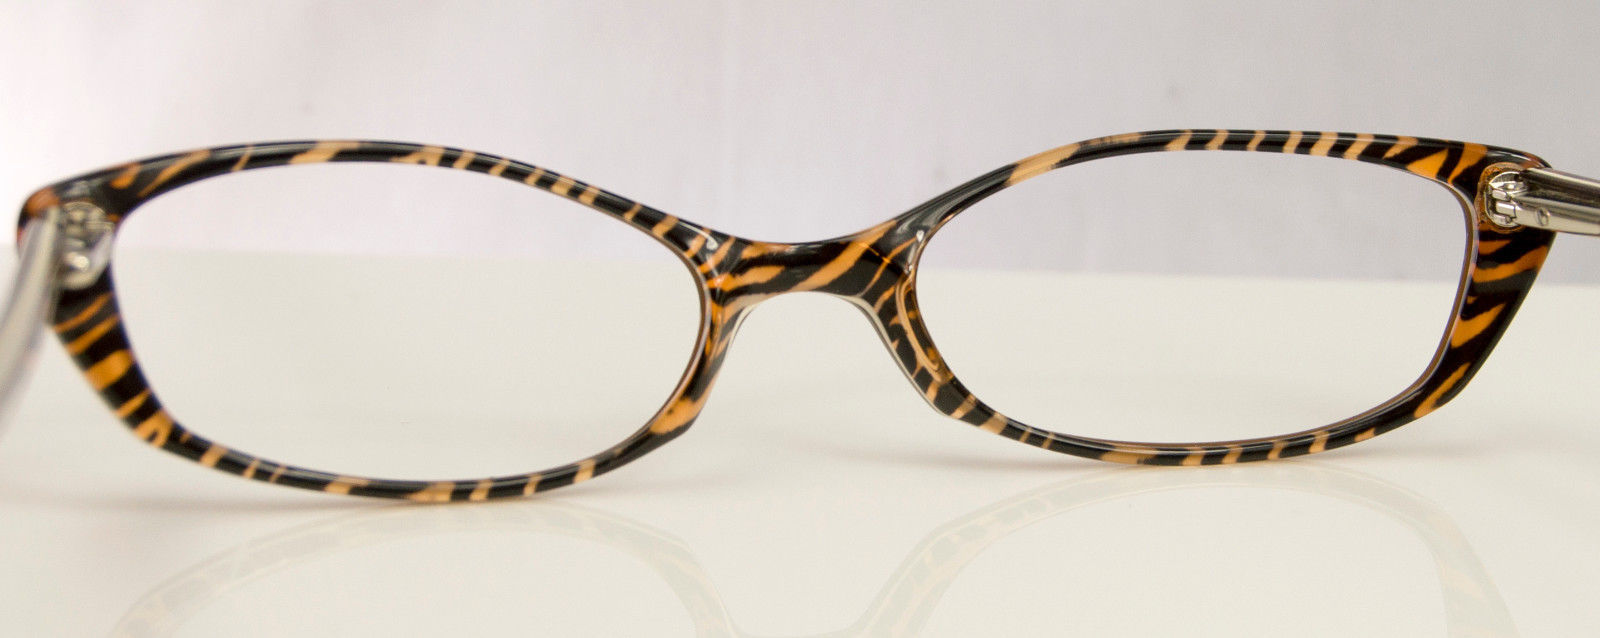 Glasses Frames Made In Italy : Vintage EX 1813 Made in Italy Eyeglass Frames 50-16-135 ...